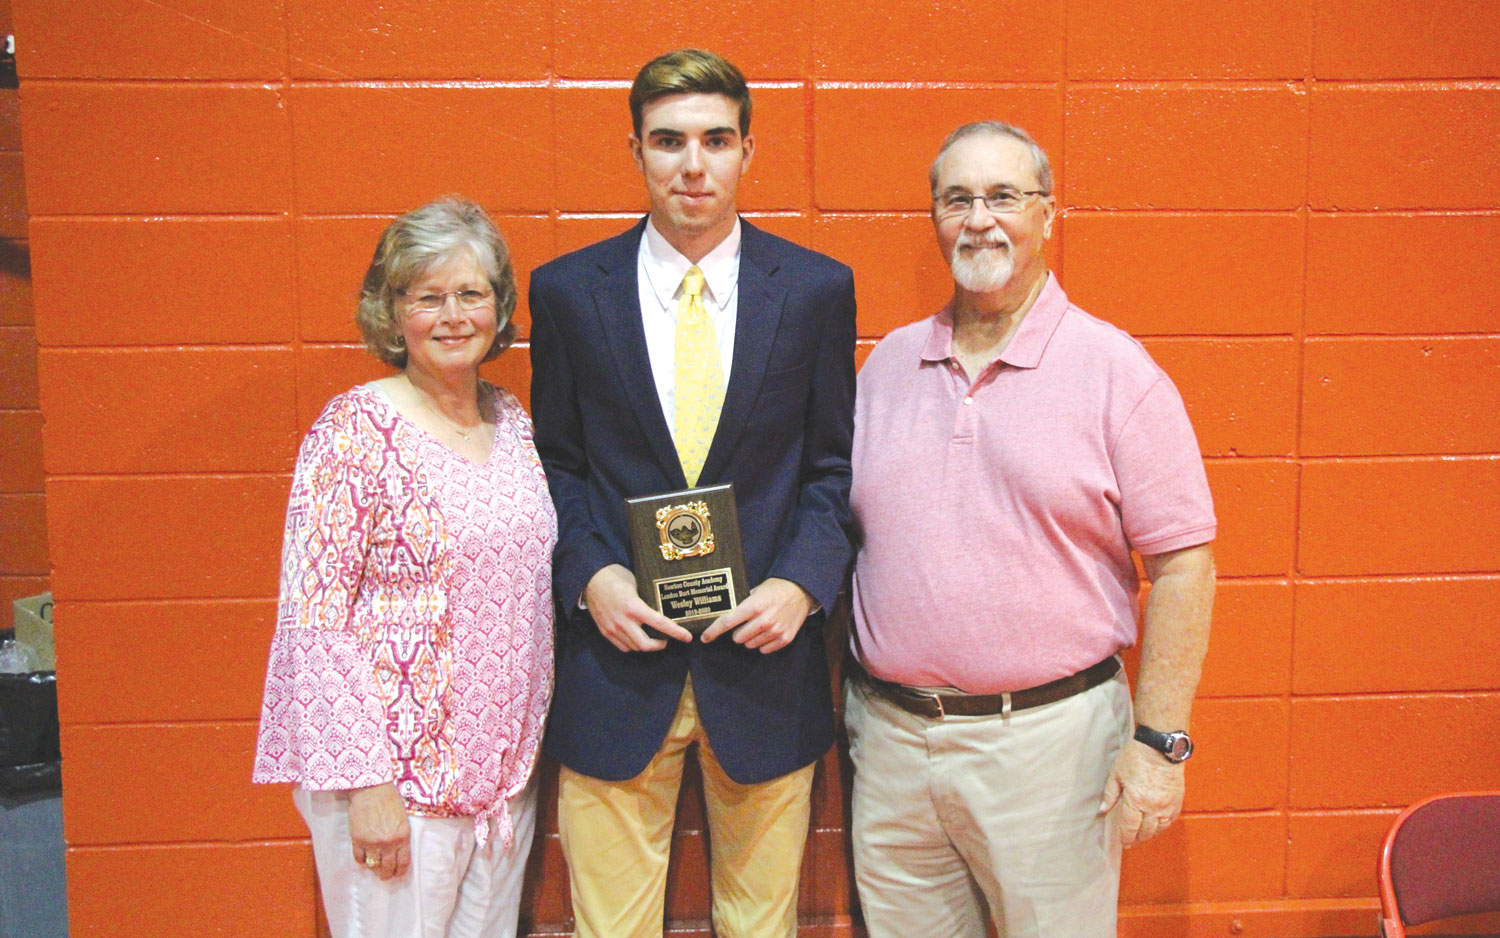 Wesley Williams was presented the Landon Burt Memorial Award, by Coach Bryan and Mary Burt